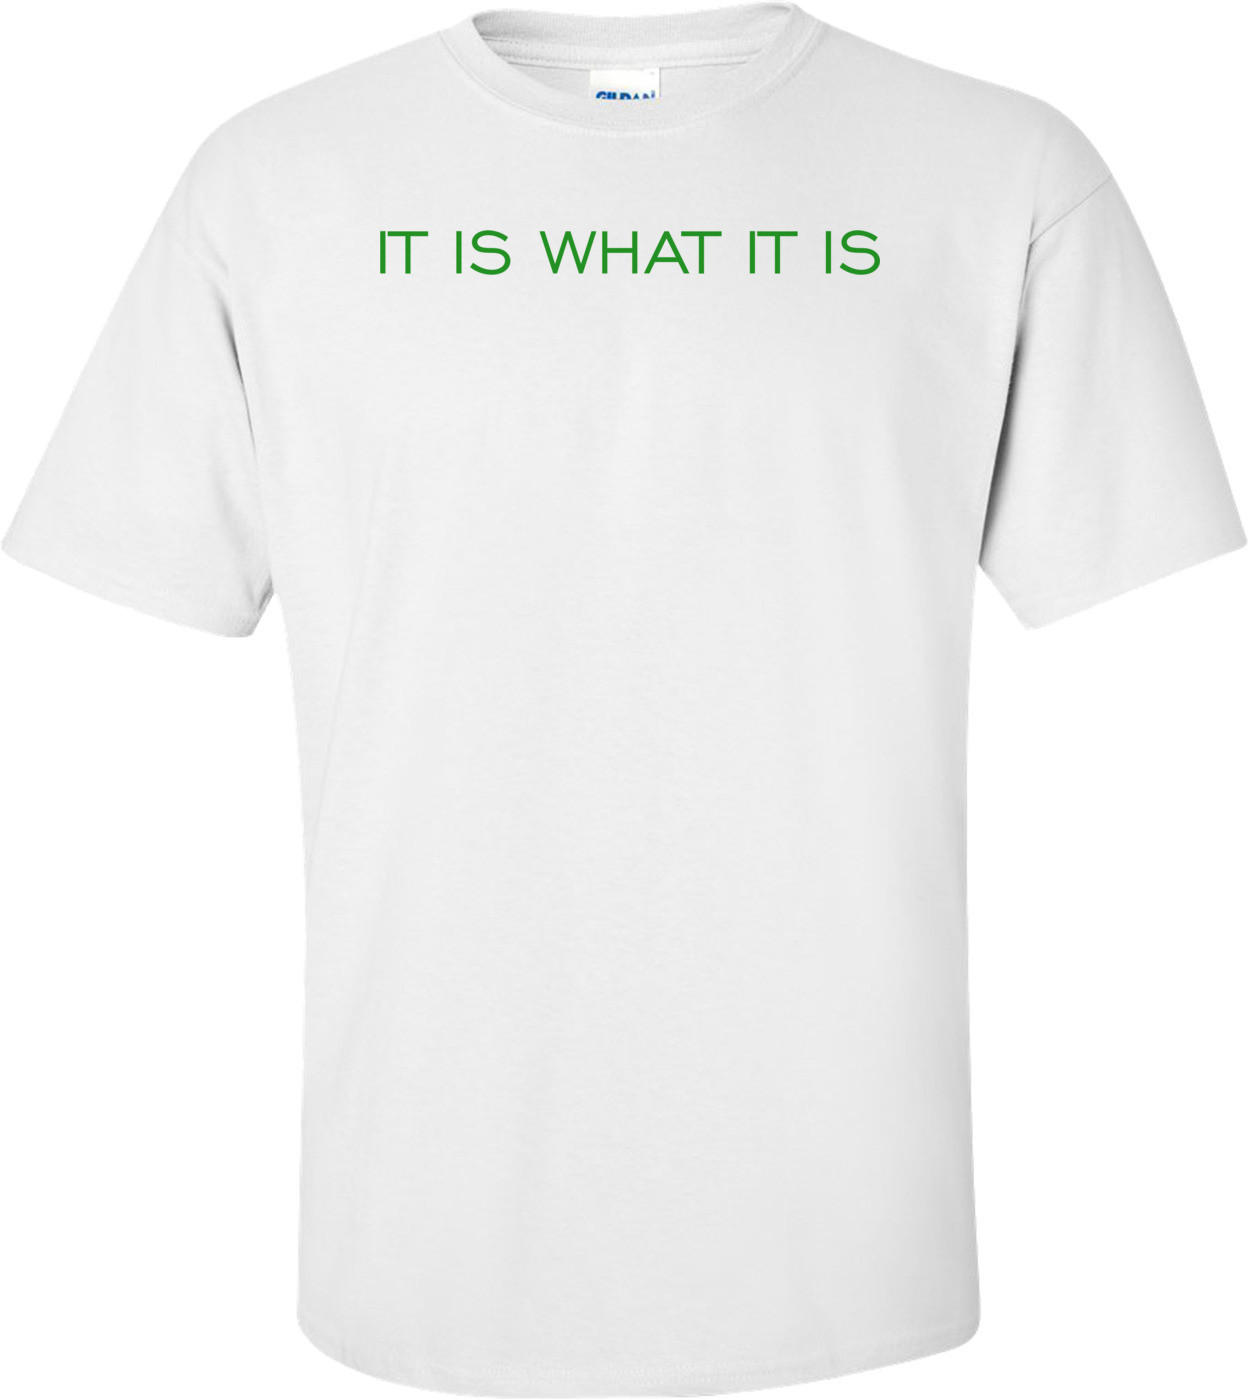 IT IS WHAT IT IS Shirt